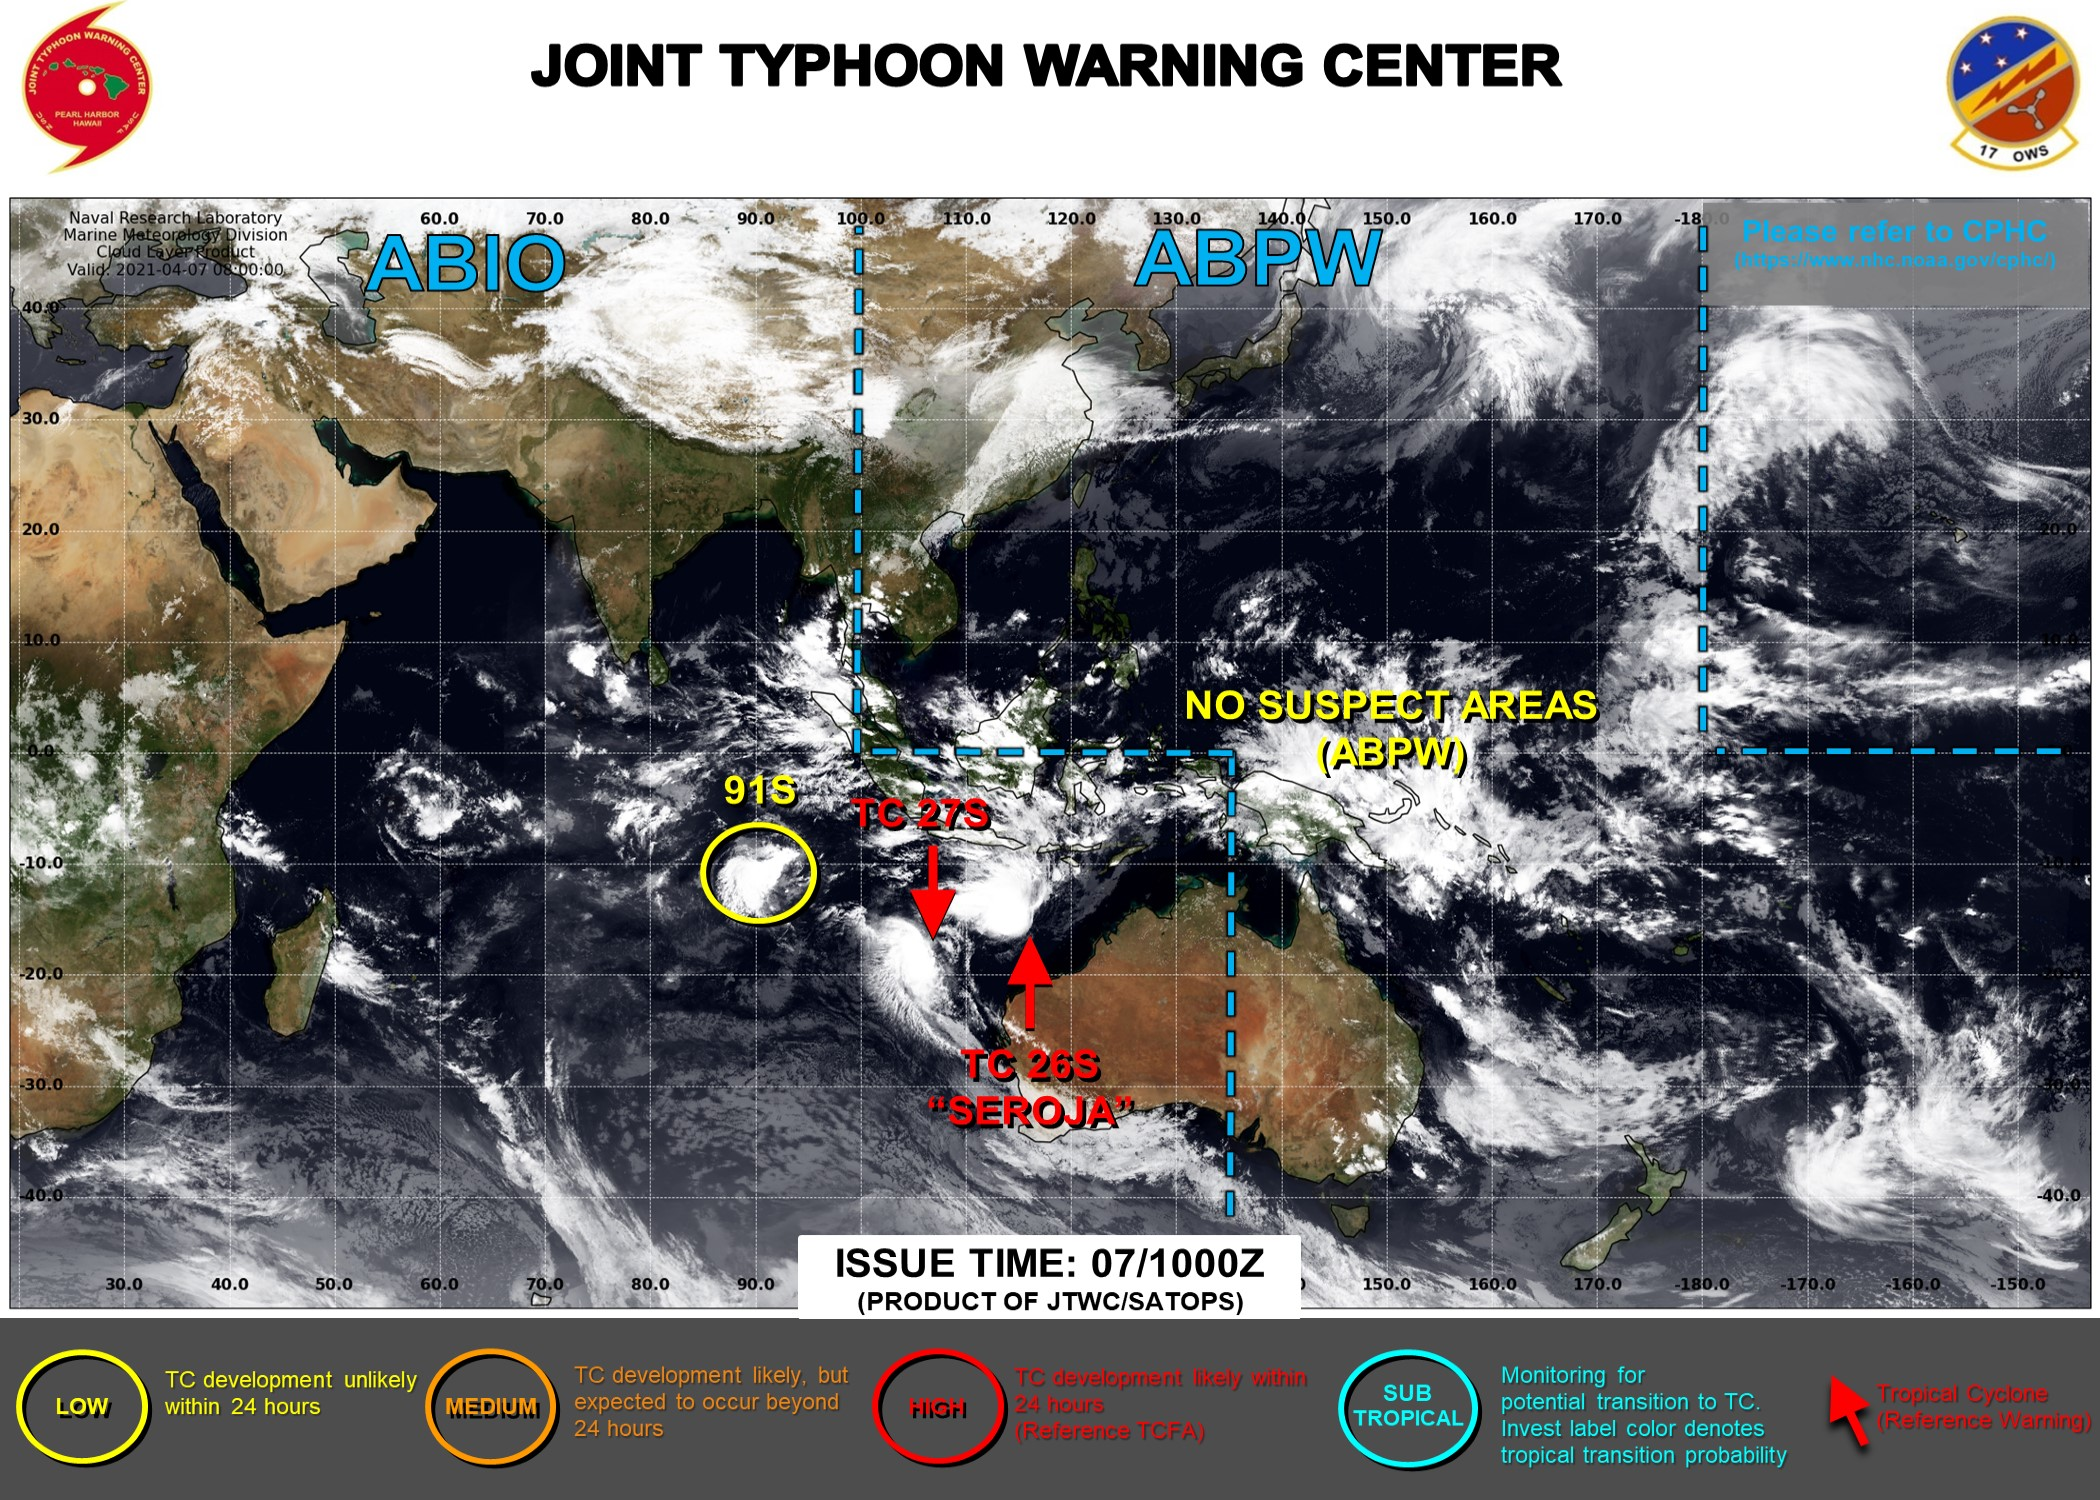 07/10UTC. JTWC IS ISSUING 6HOURLY WARNINGS ON 26S(SEROJA) AND 27S. 3HOURLY SATELLITE BULLETINS ARE ISSUED FOR BOTH SYSTEMS. INVEST 91S IS NOW ON THE MAP WITH CURRENTLY LOW CHANCES OF REACHING 35KNOTS WITHIN 24HOURS.